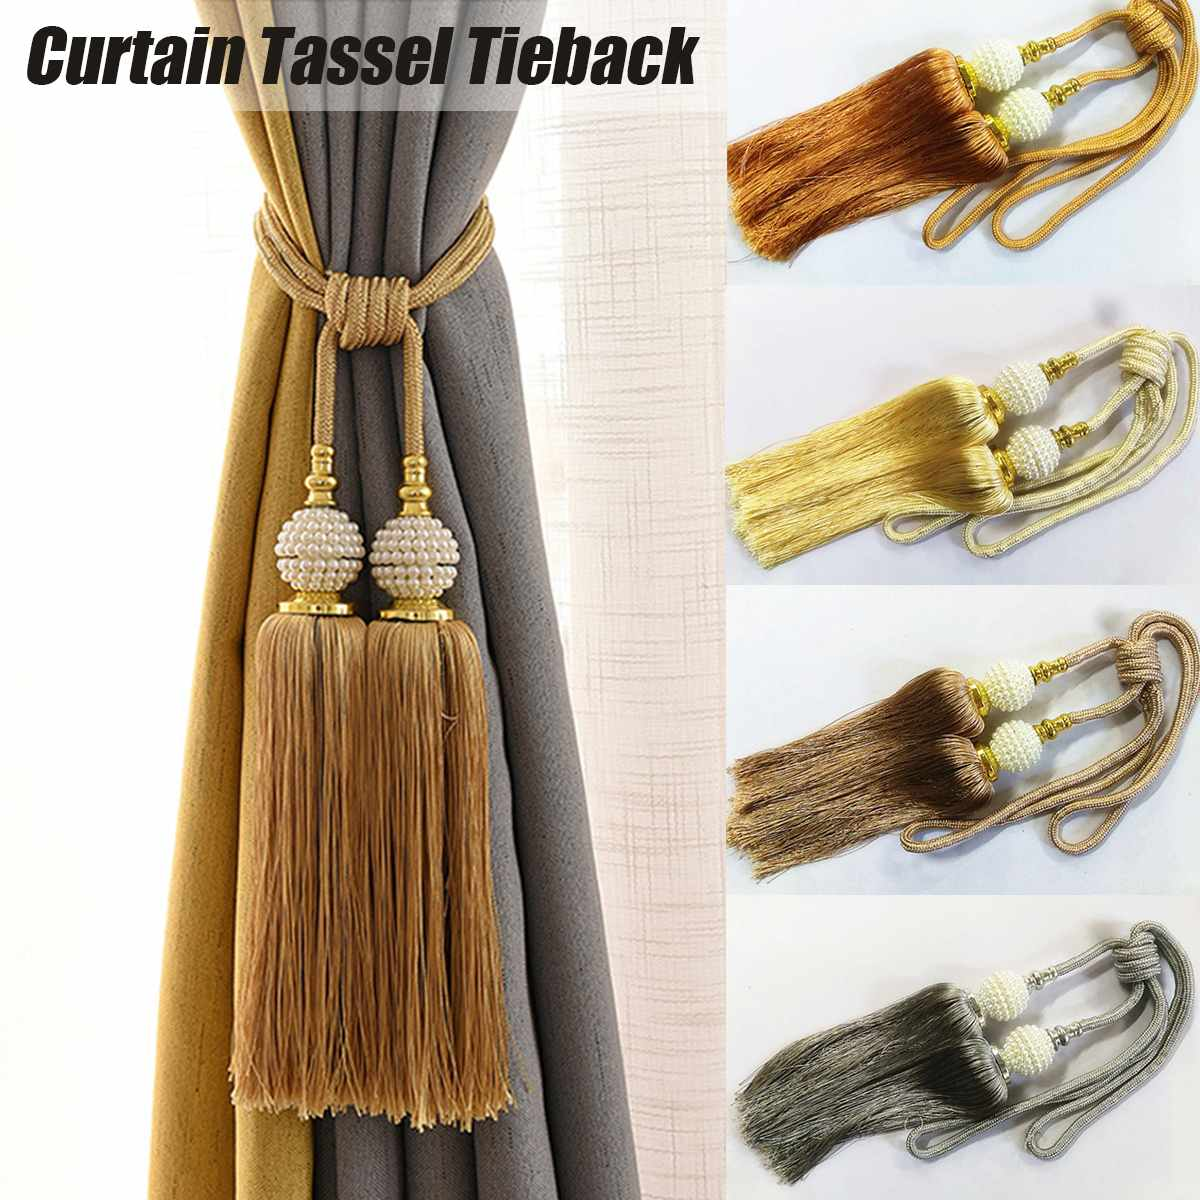 2pcs Handmade Window Curtain Rope Tie Backs Tieback Holdbacks Cord Tie Home Deco